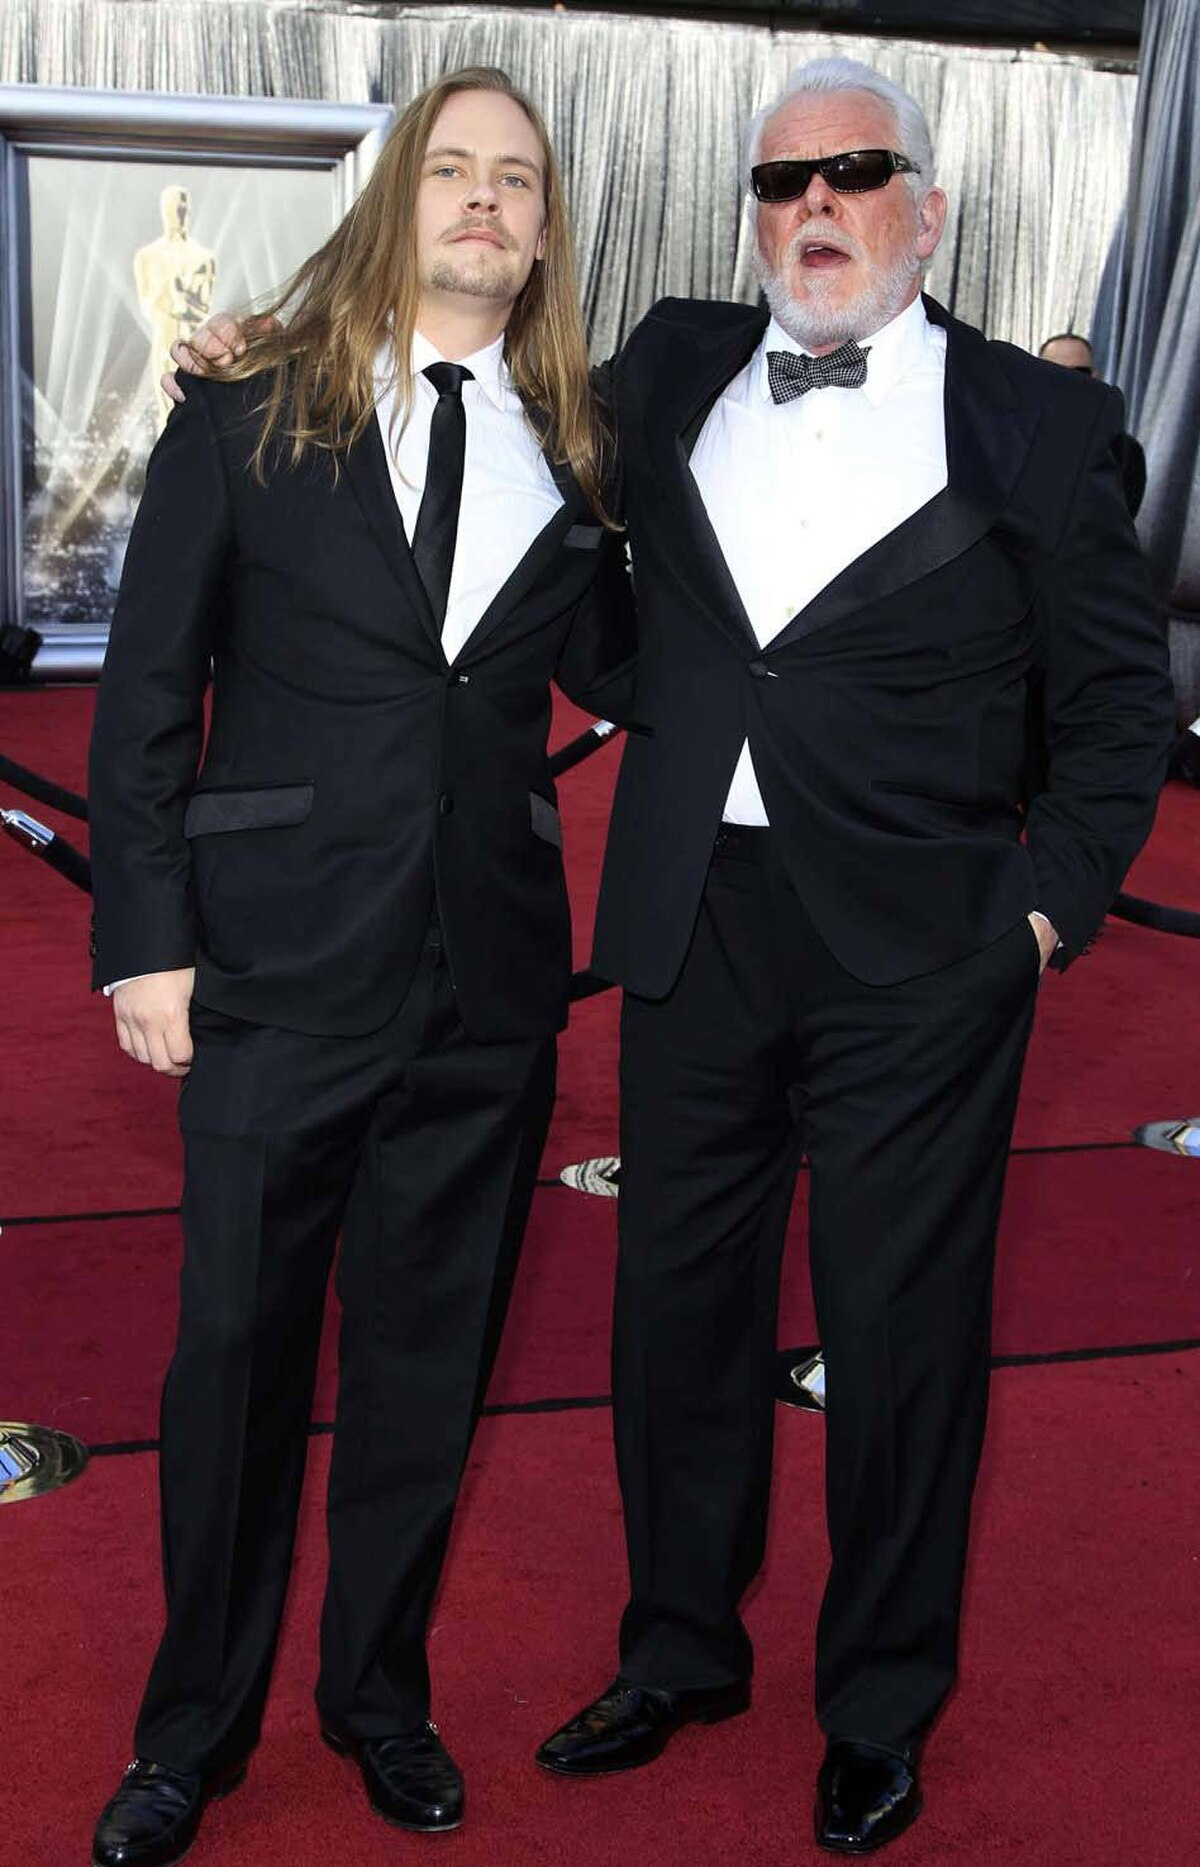 Nick Nolte arrives at the Oscars with his son Brawley. His other sons Fracasly and Donnybrookly stayed home.